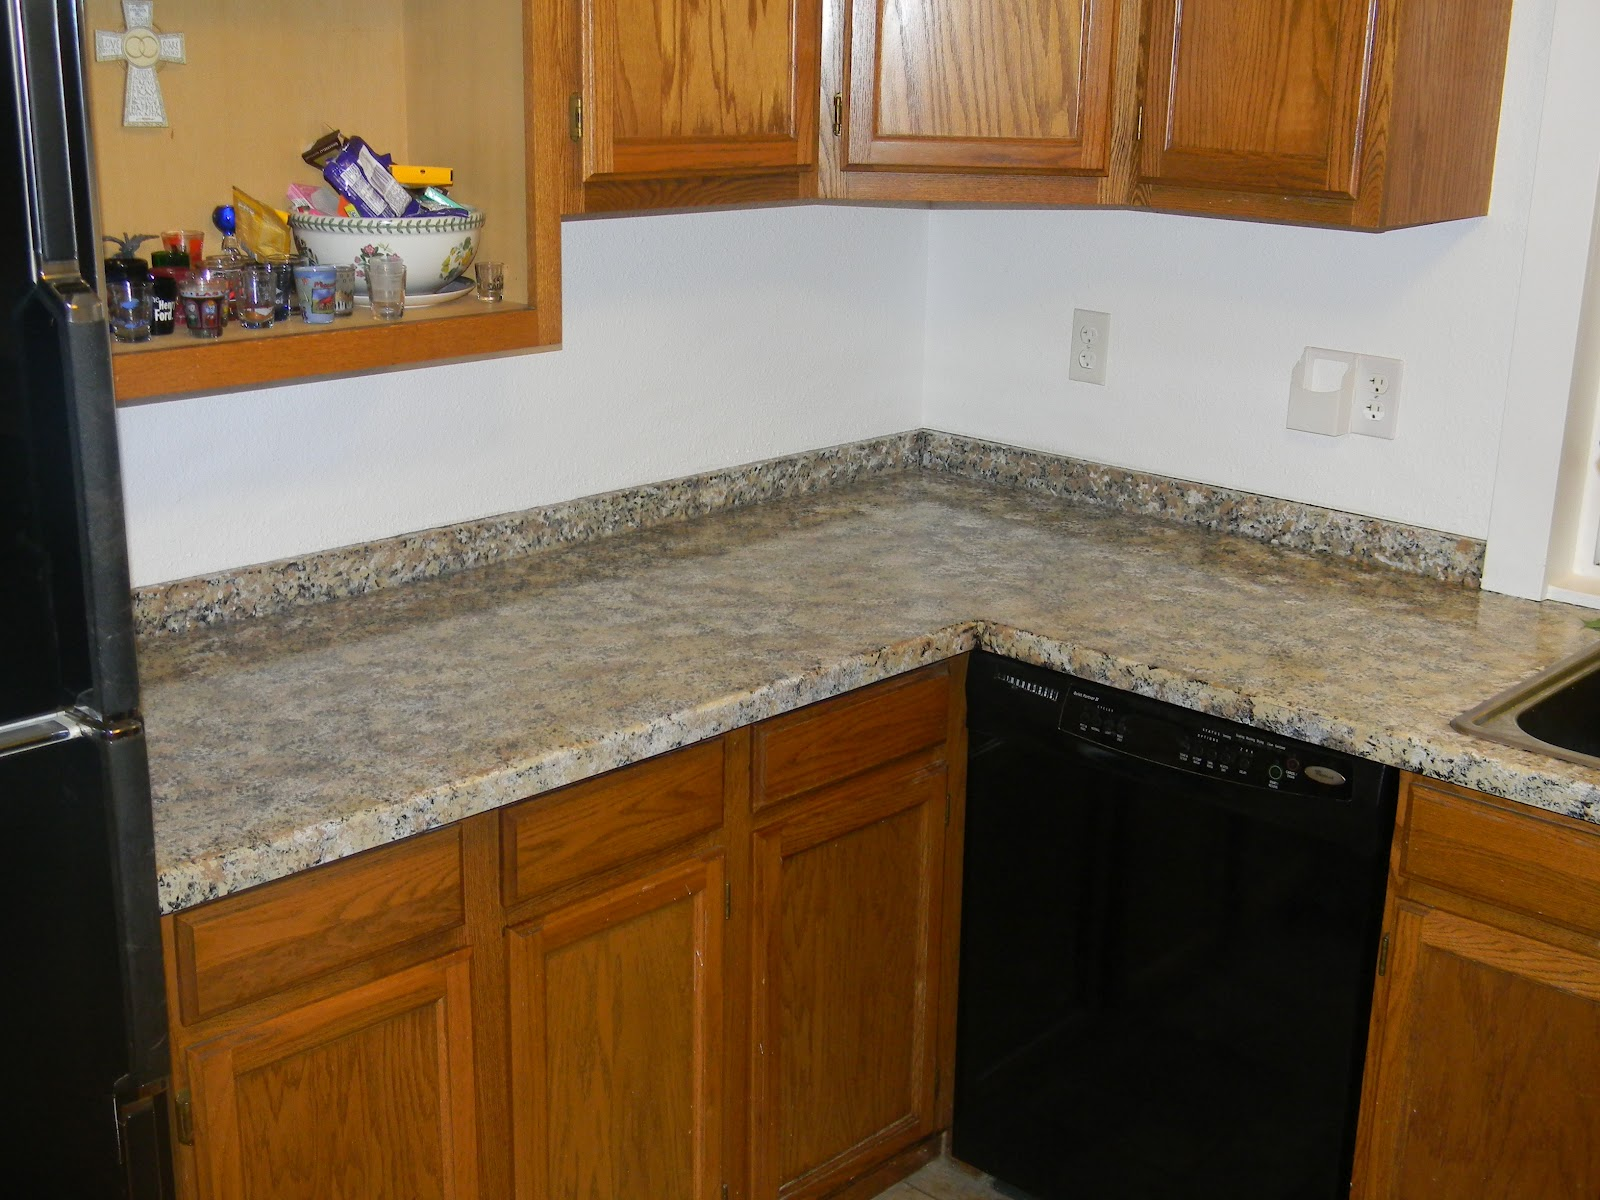 Giani Countertop Paint Walmart : See my new Kitchen! I love my new Giani Countertops!